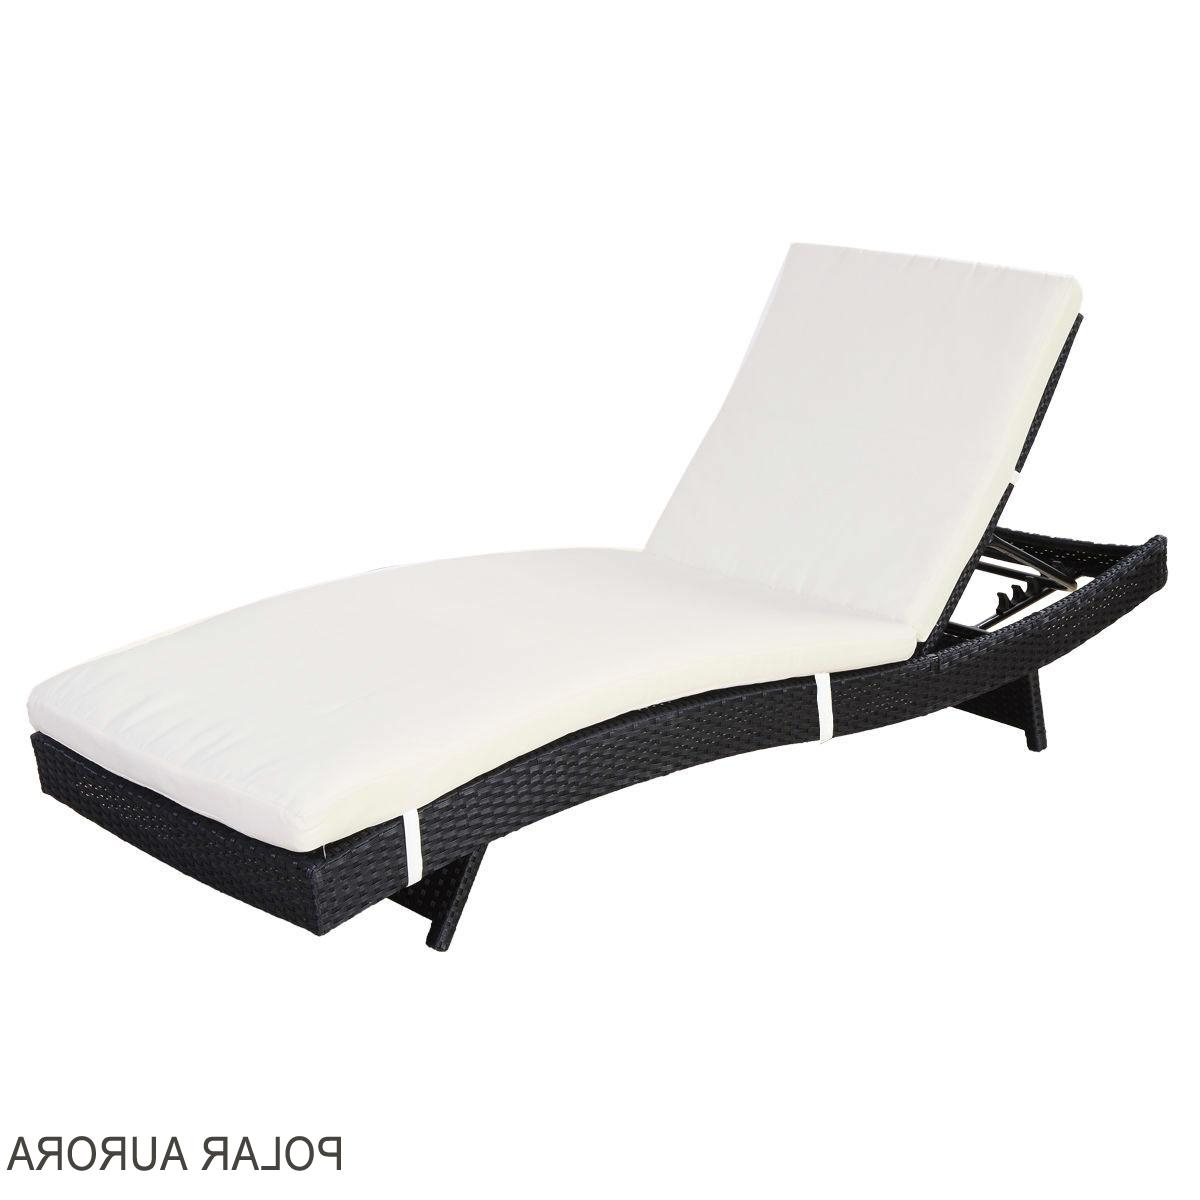 Most Current Outdoor Adjustable Rattan Wicker Chaise Pool Chairs With Cushions Inside Polar Aurora Adjustable Rattan Wicker Chaise Lounge Chair (View 16 of 25)